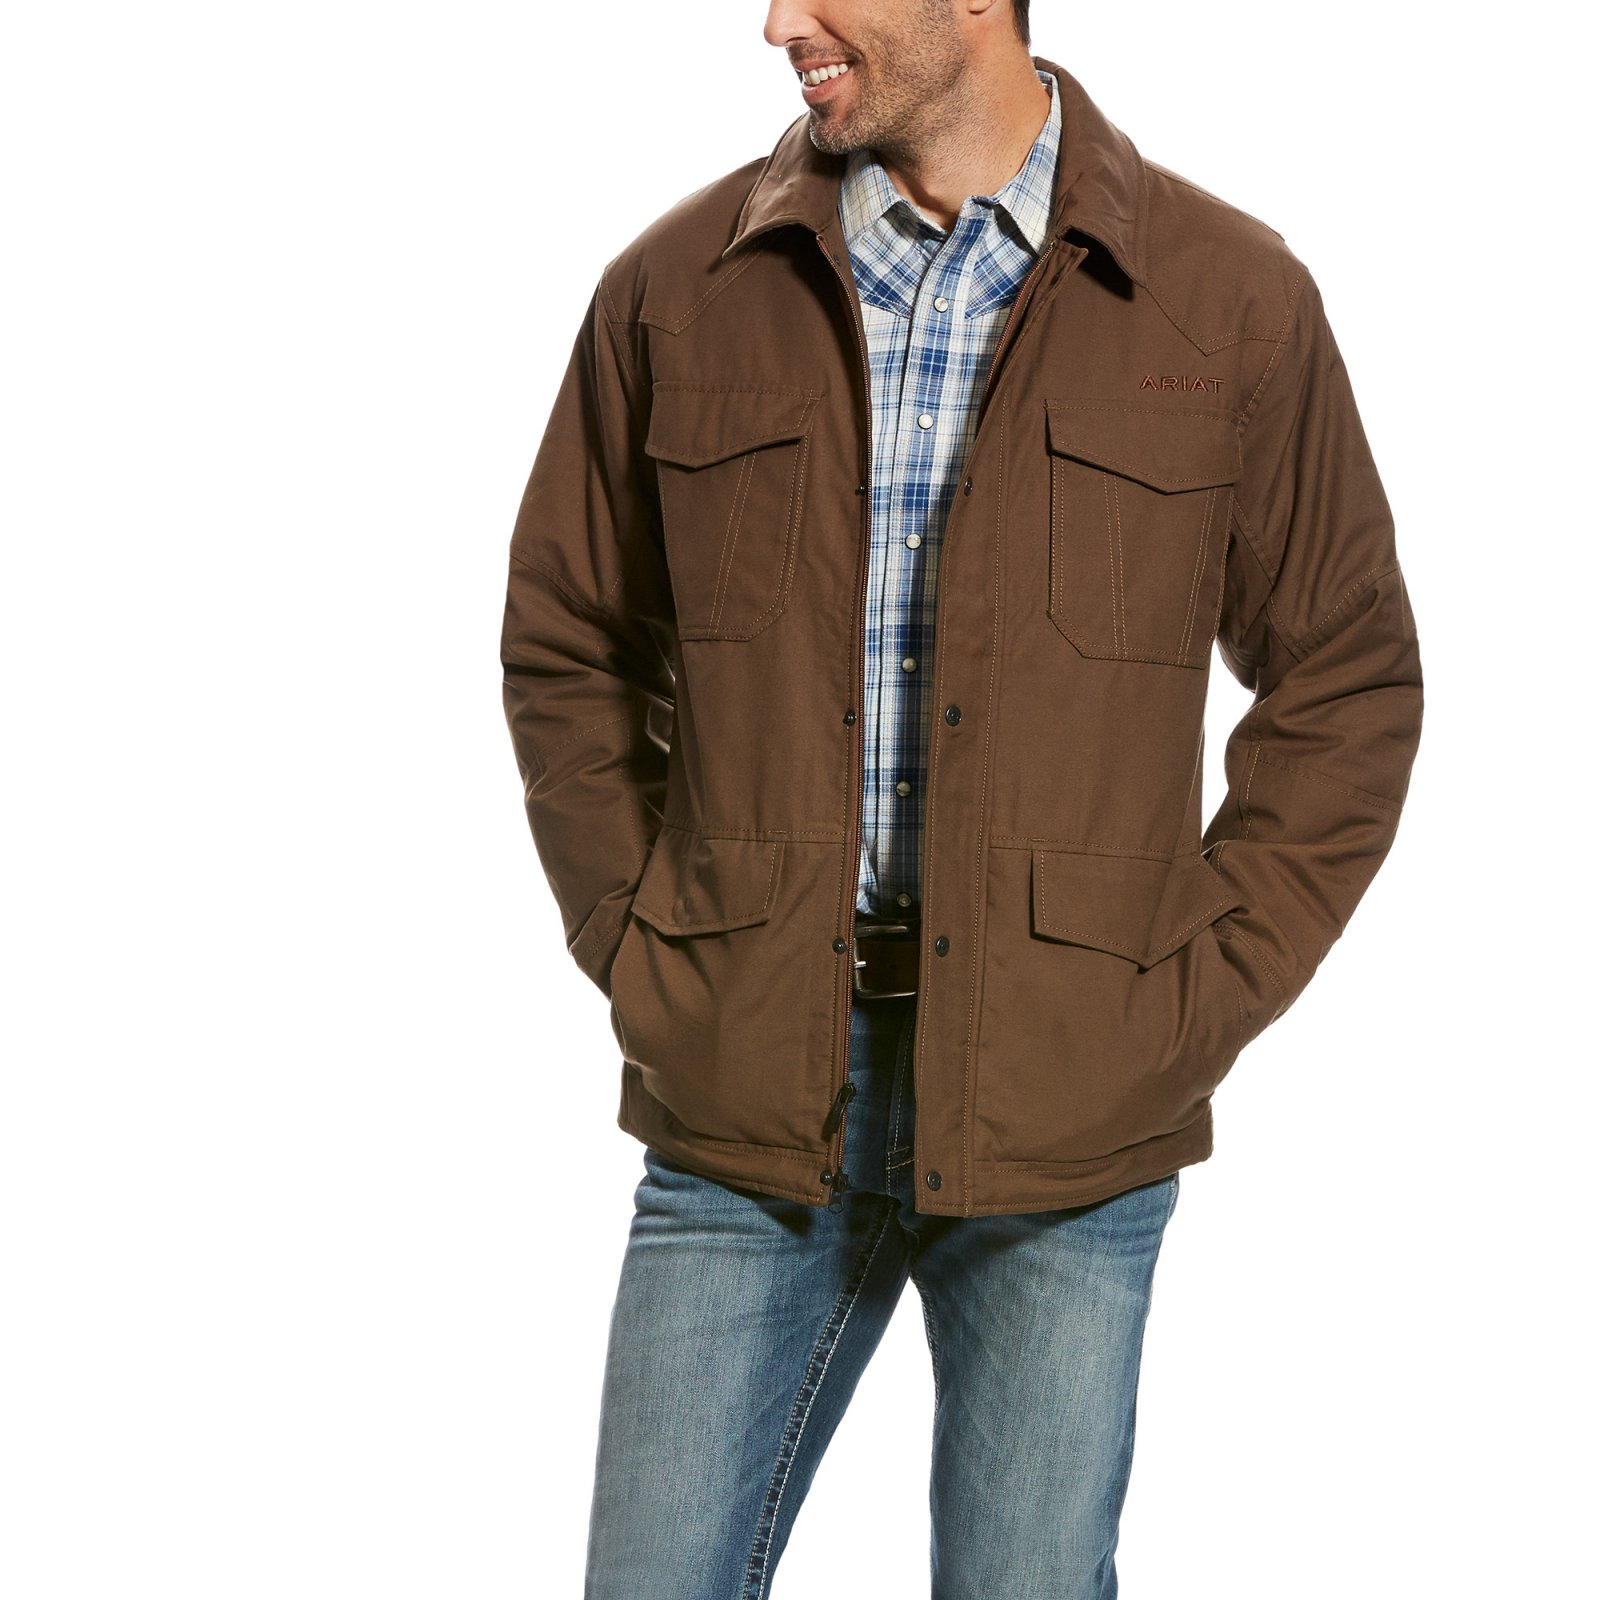 Men's Waggoner Canvas Jacket from Ariat